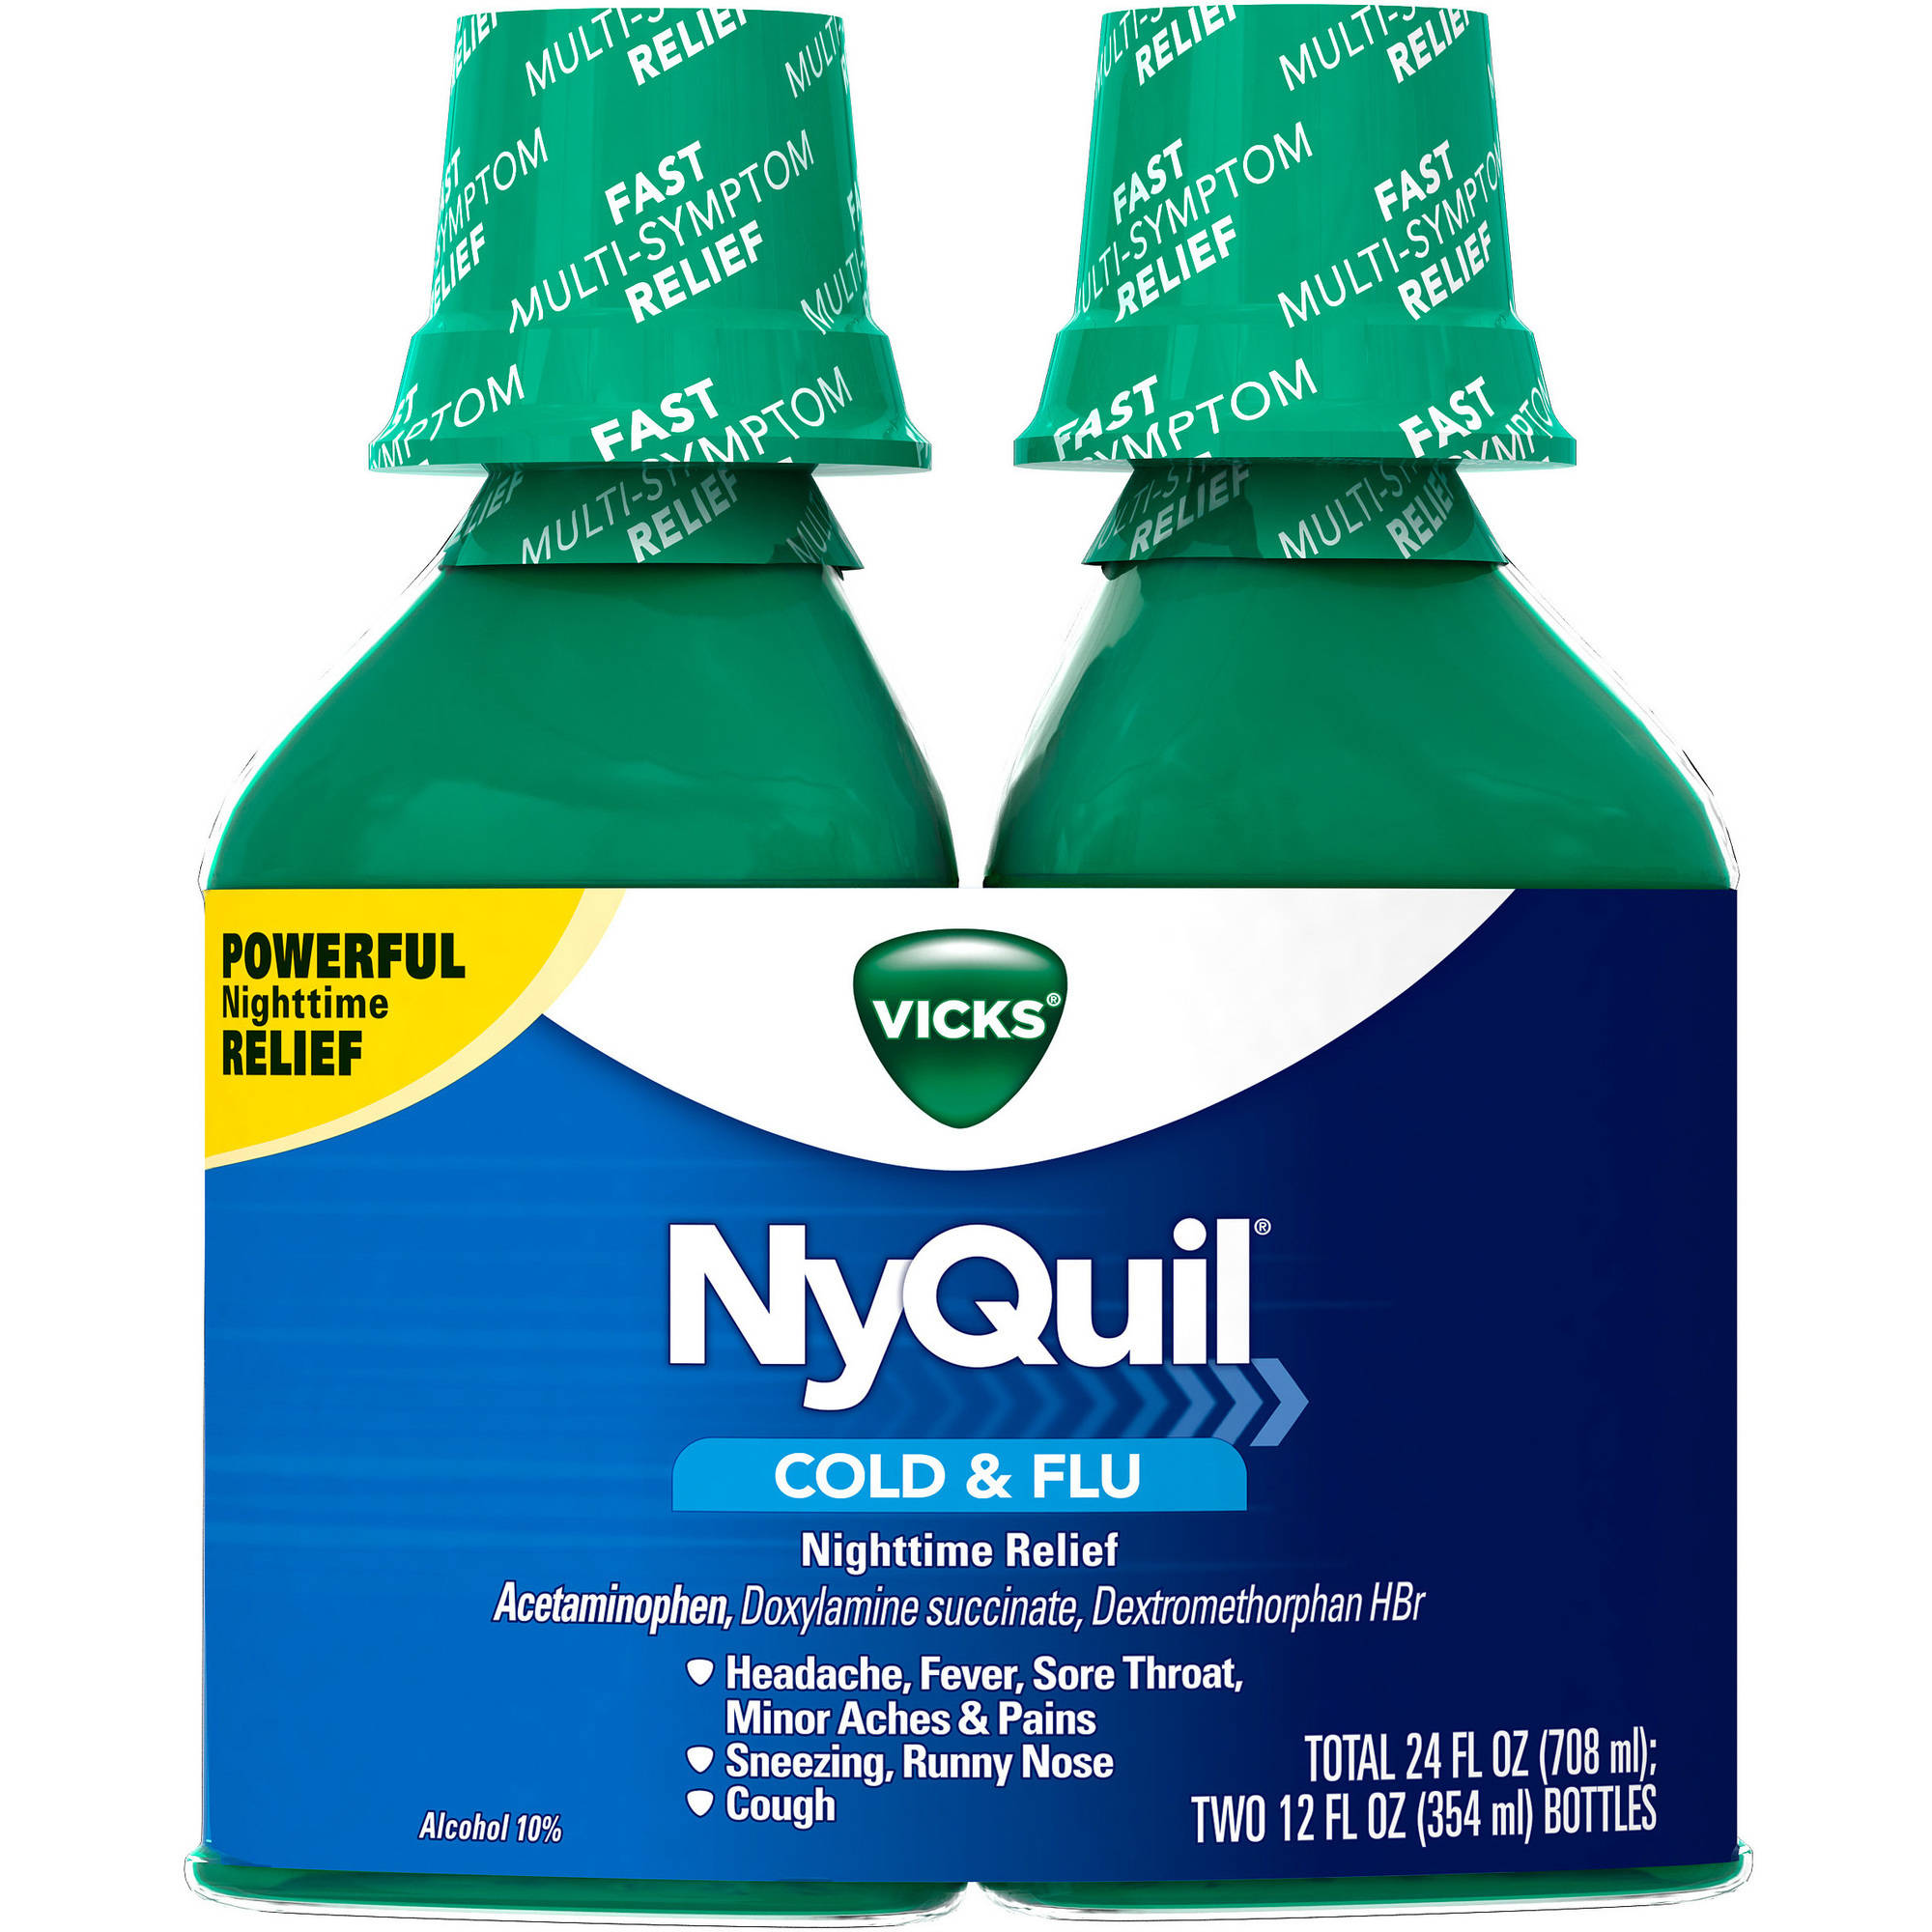 Vicks NyQuil Cold & Flu Nighttime Relief Original Flavor Liquid, 12 fl oz, (Pack of 2)